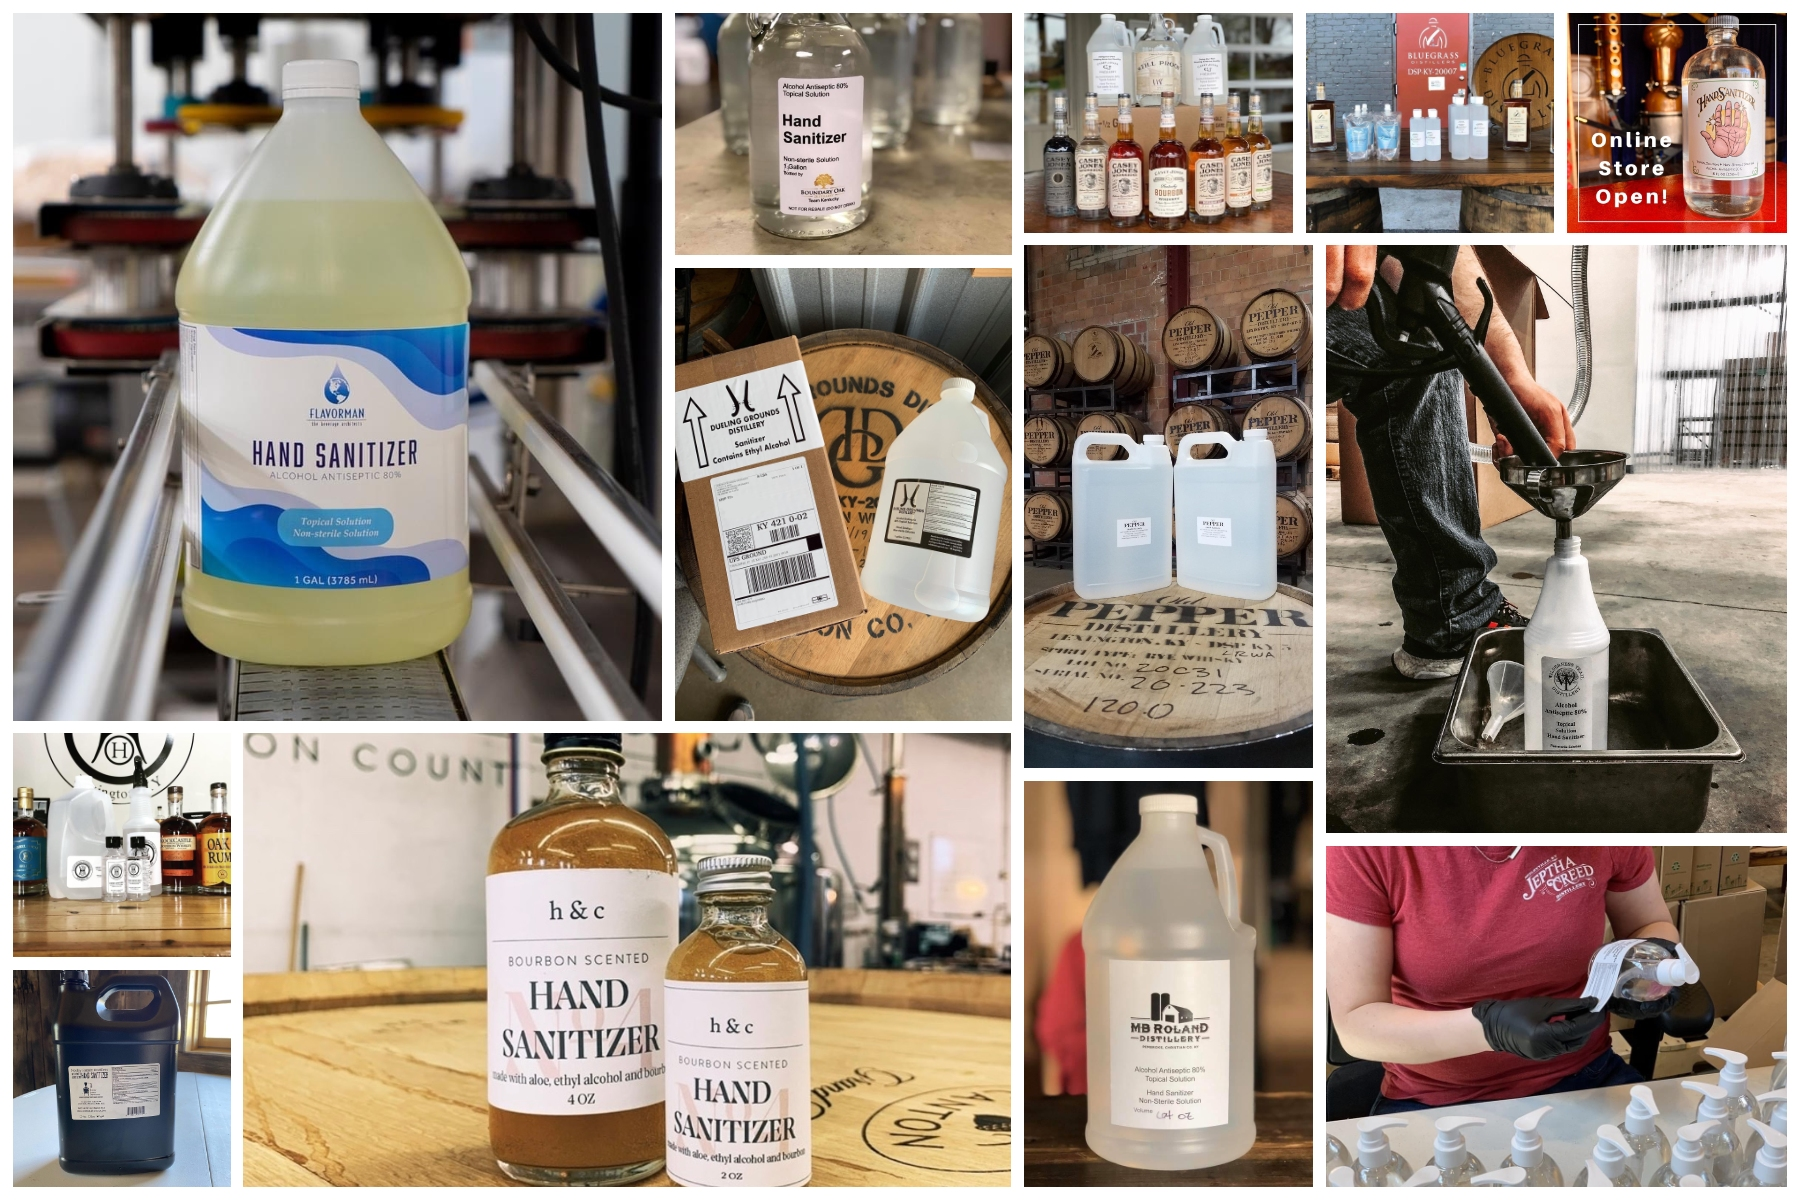 collage from picmyna 3 - Public Sale of Hand Sanitizer